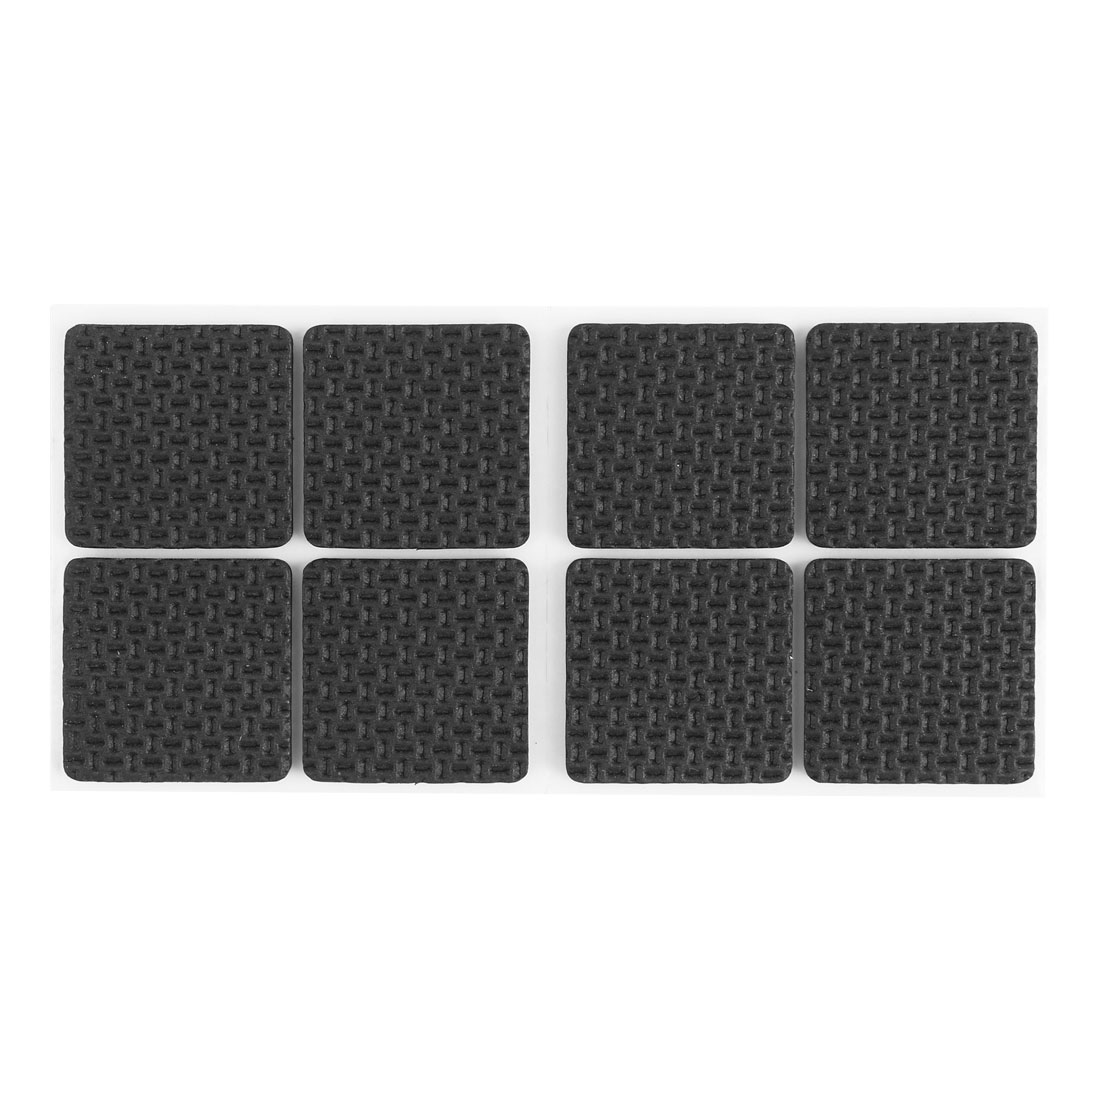 8 Pcs EVA Nonslip Self Adhesive Furniture Chair Pad Floor Scratch Protector 38mm